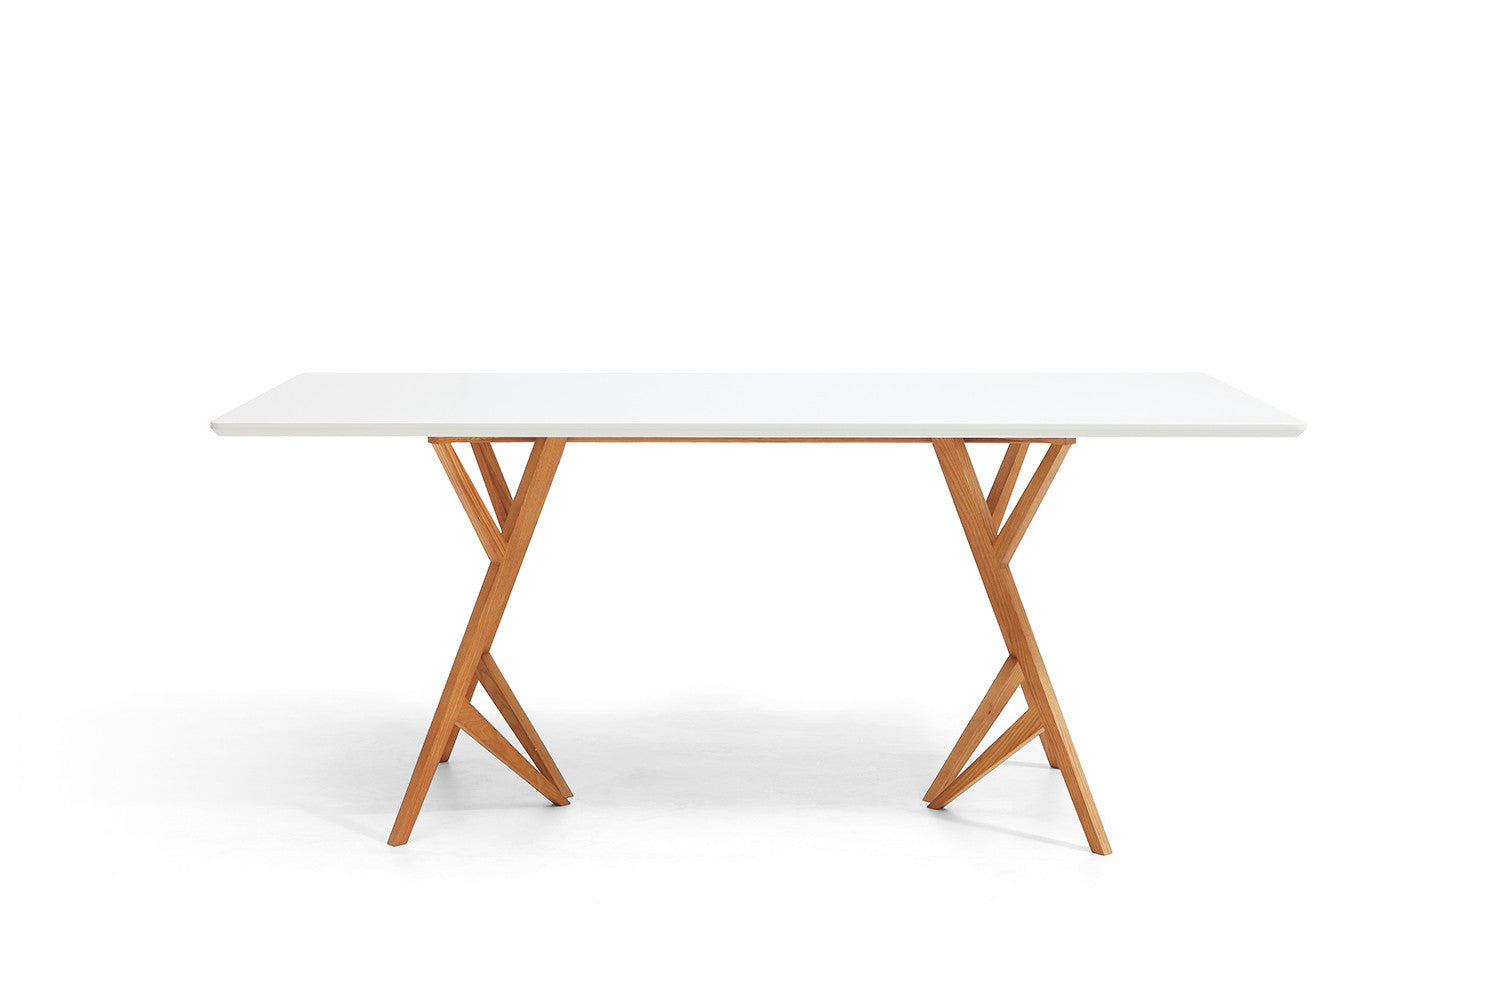 Table de salle manger design scandinave vispa dewarens for Table salle manger design